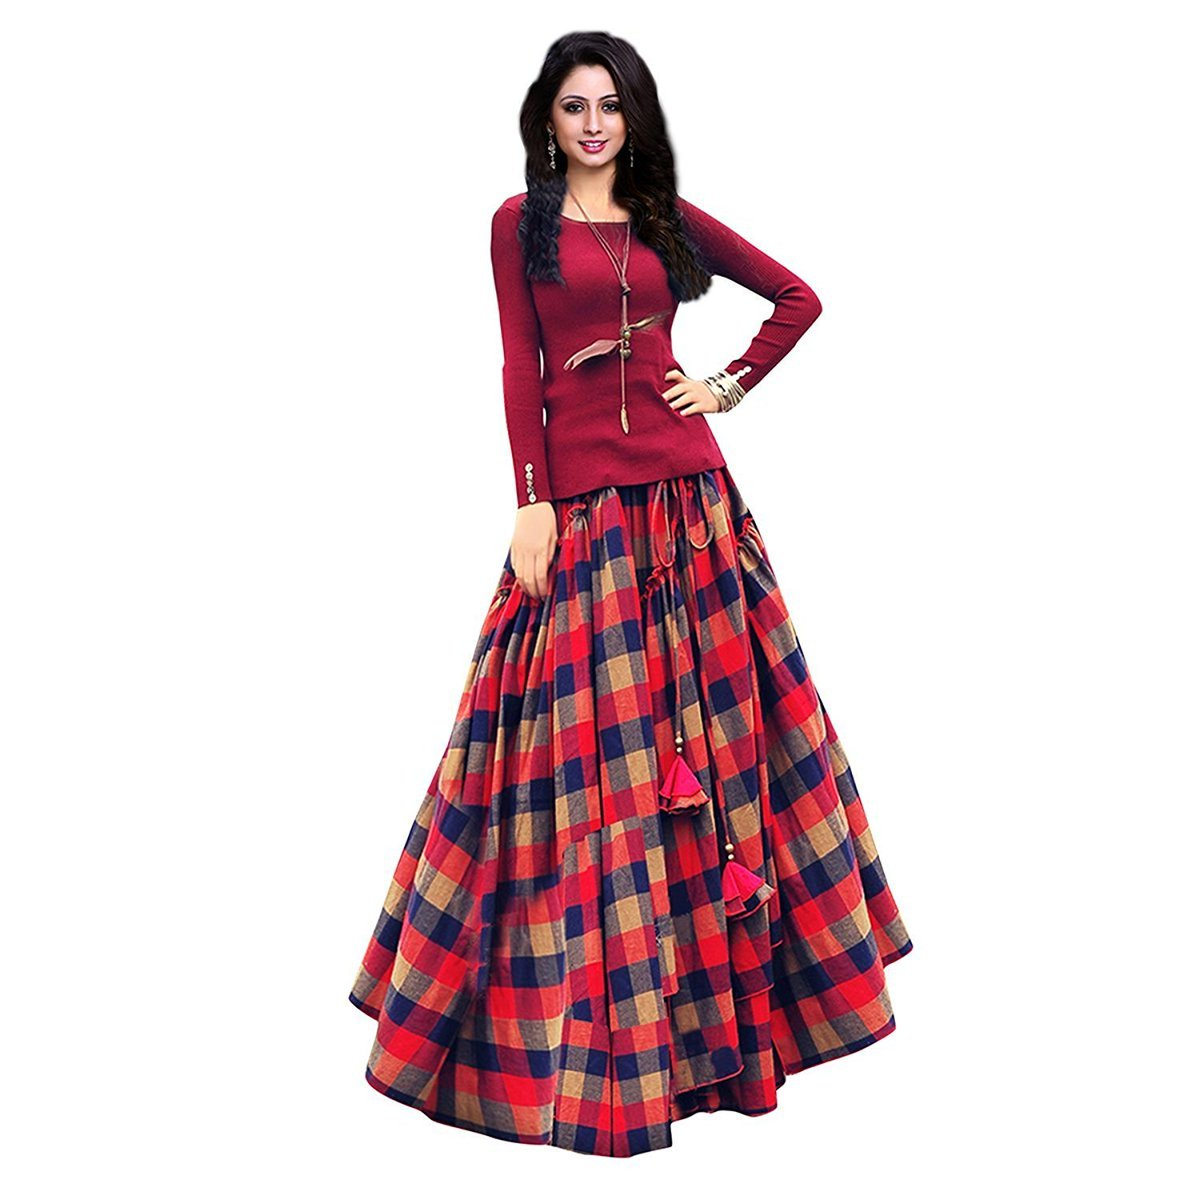 df7c2107b33e0d Crop Top and Skirt Lehenga Collection Online Shop Here     http   bit.ly 2j6wYlX COD Available